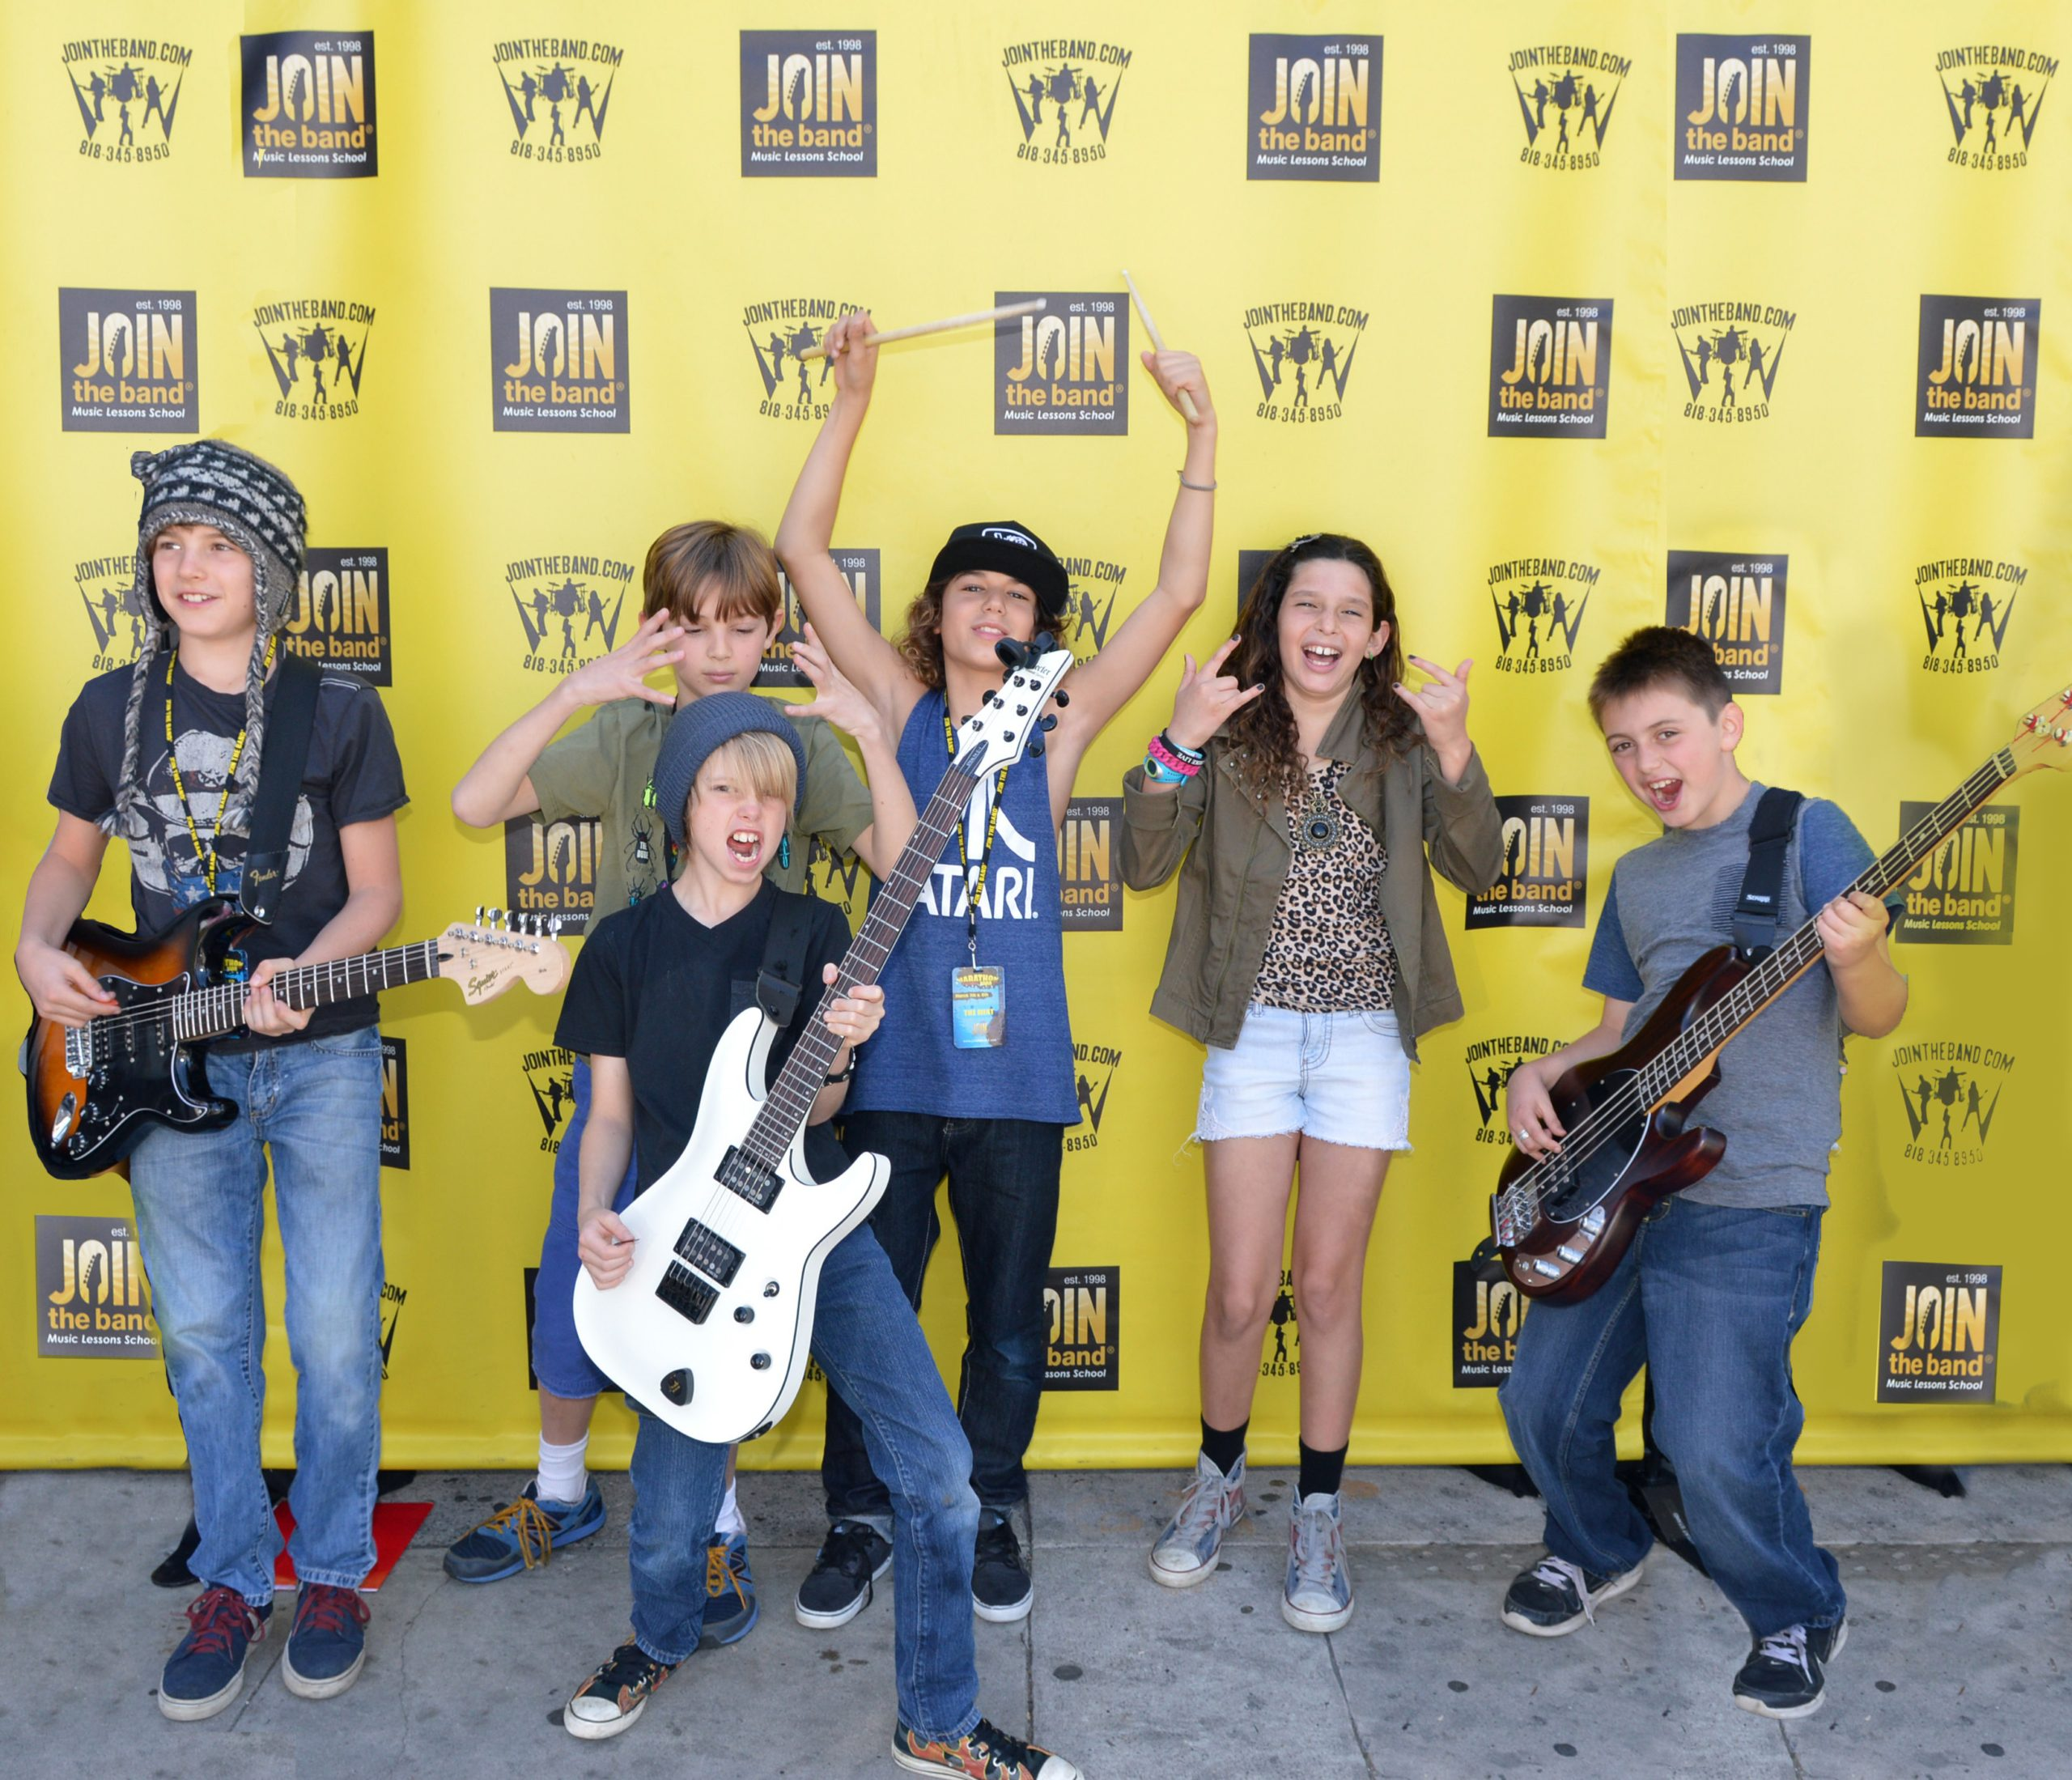 Kids Teens Rock Band Join the Band